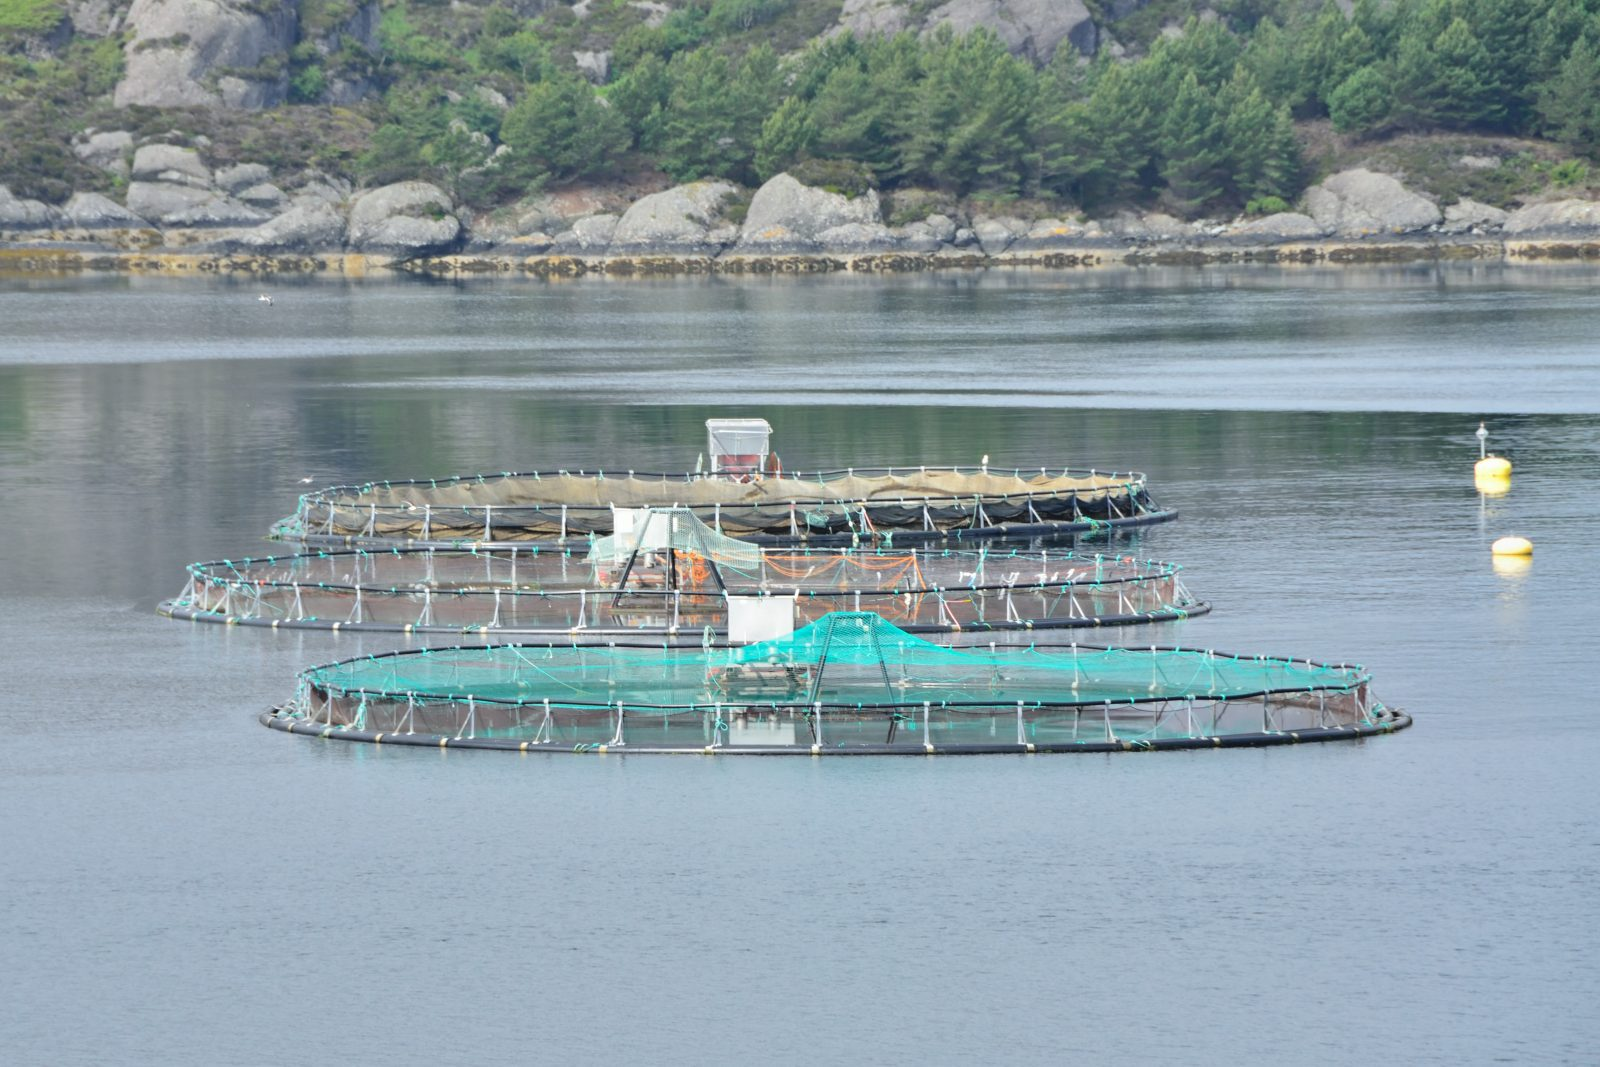 Feedback welcomes new report challenging the aquaculture industry